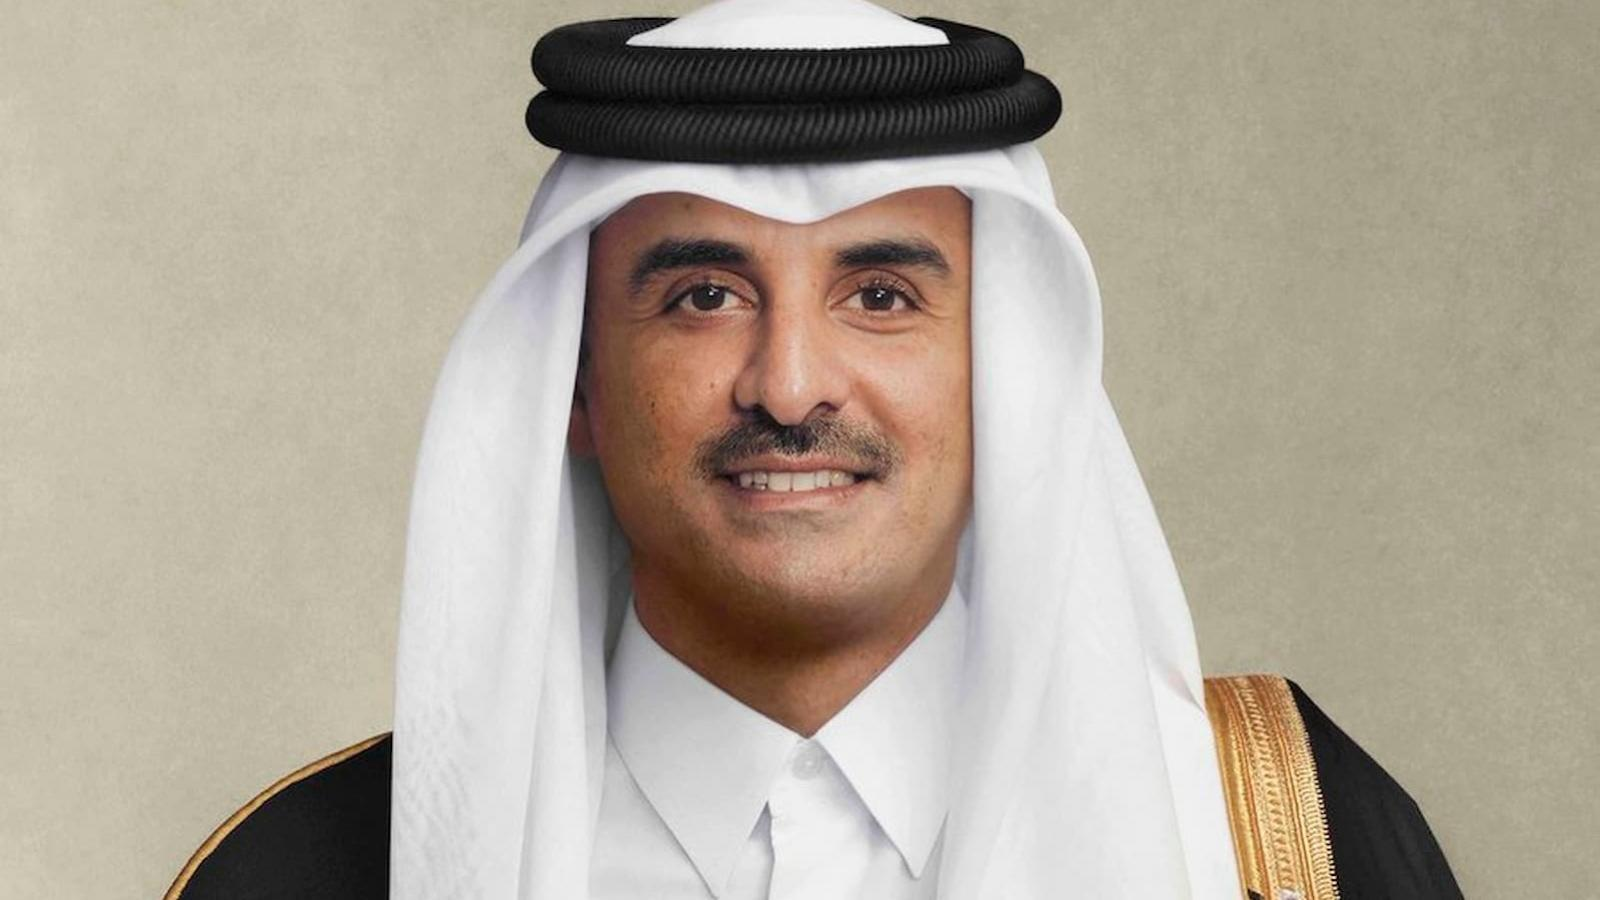 HH the Amir directs allocation of $500 million grant for Gaza reconstruction